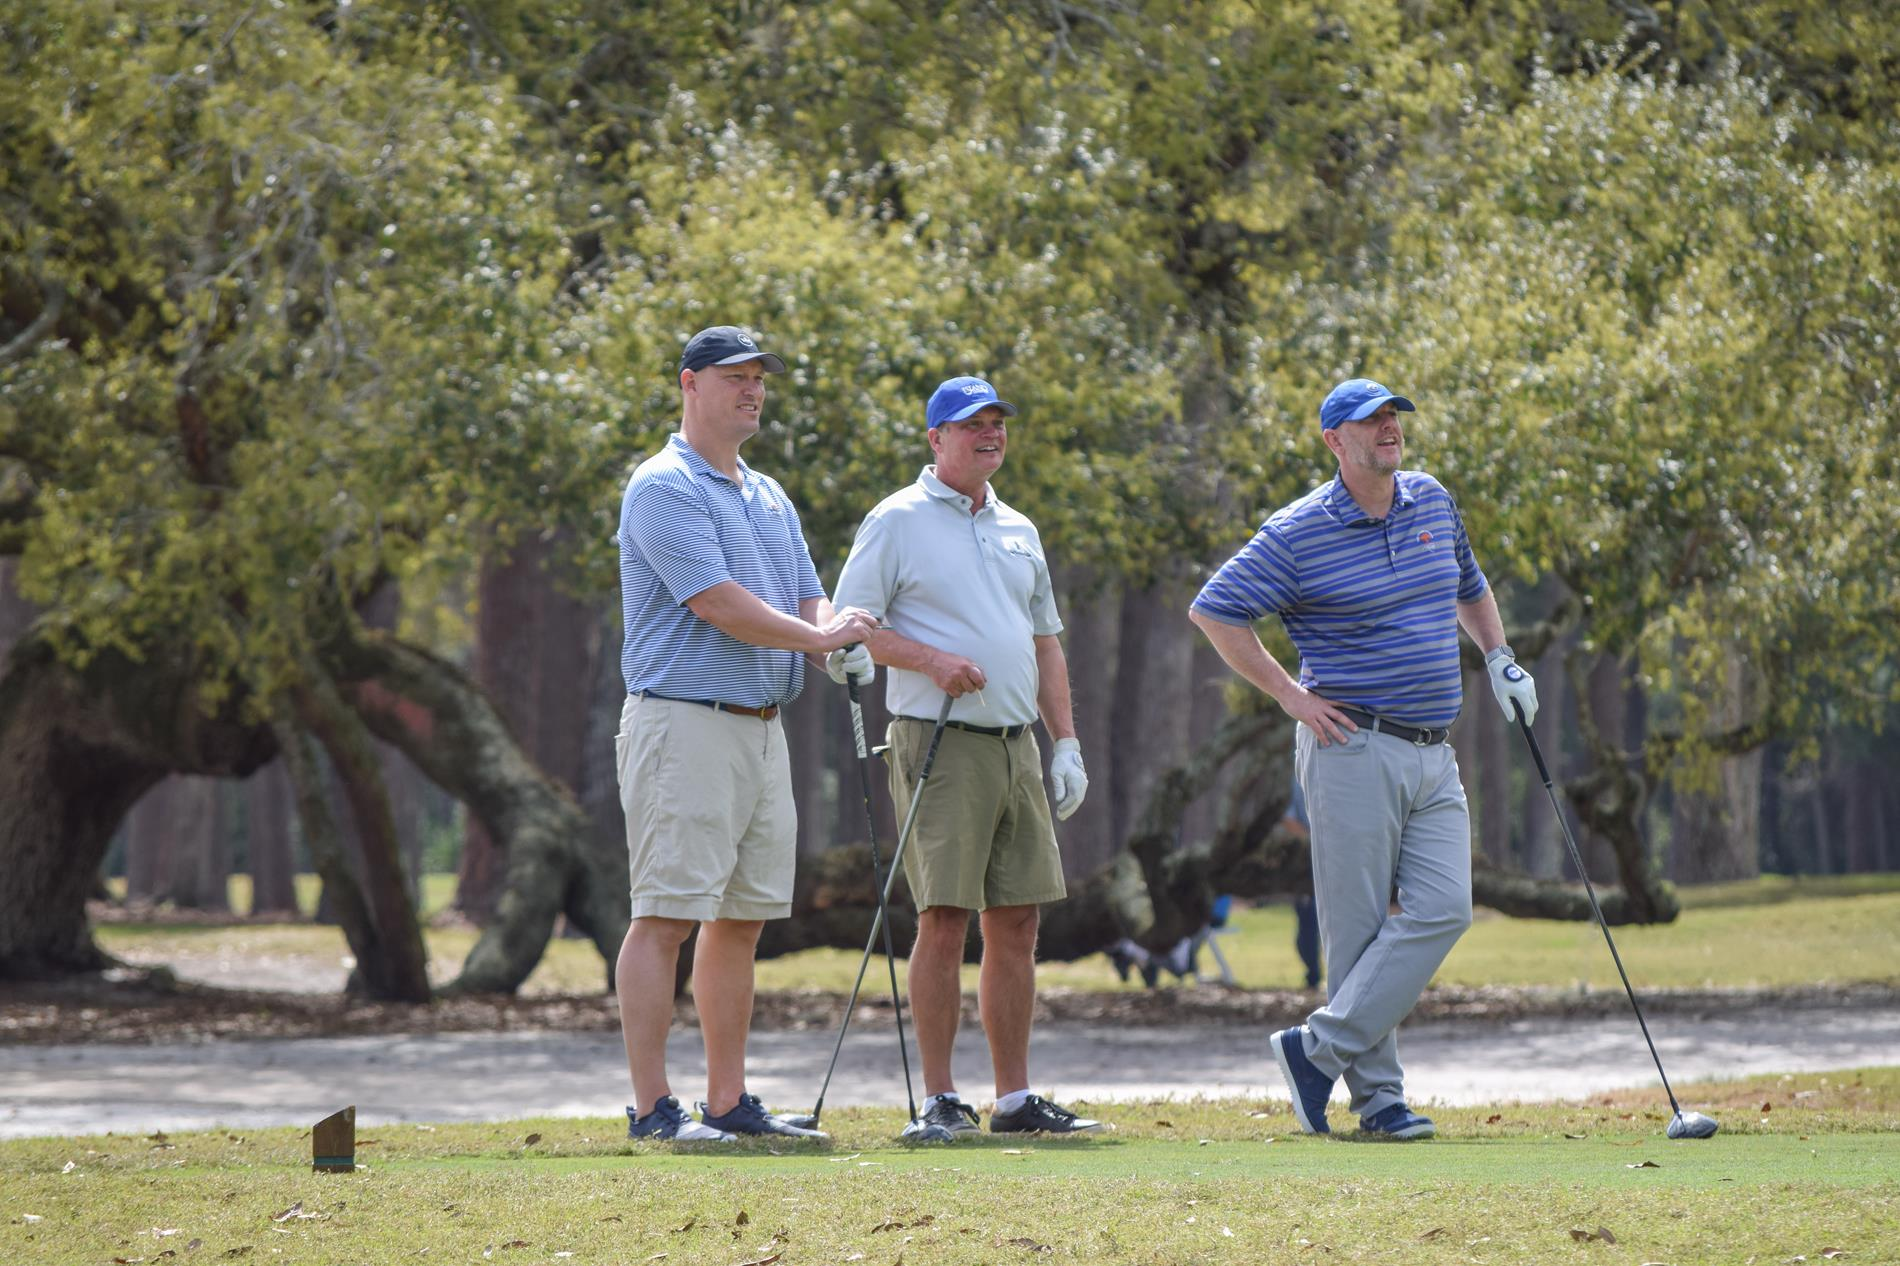 Golfers Participating in the Golf Classic